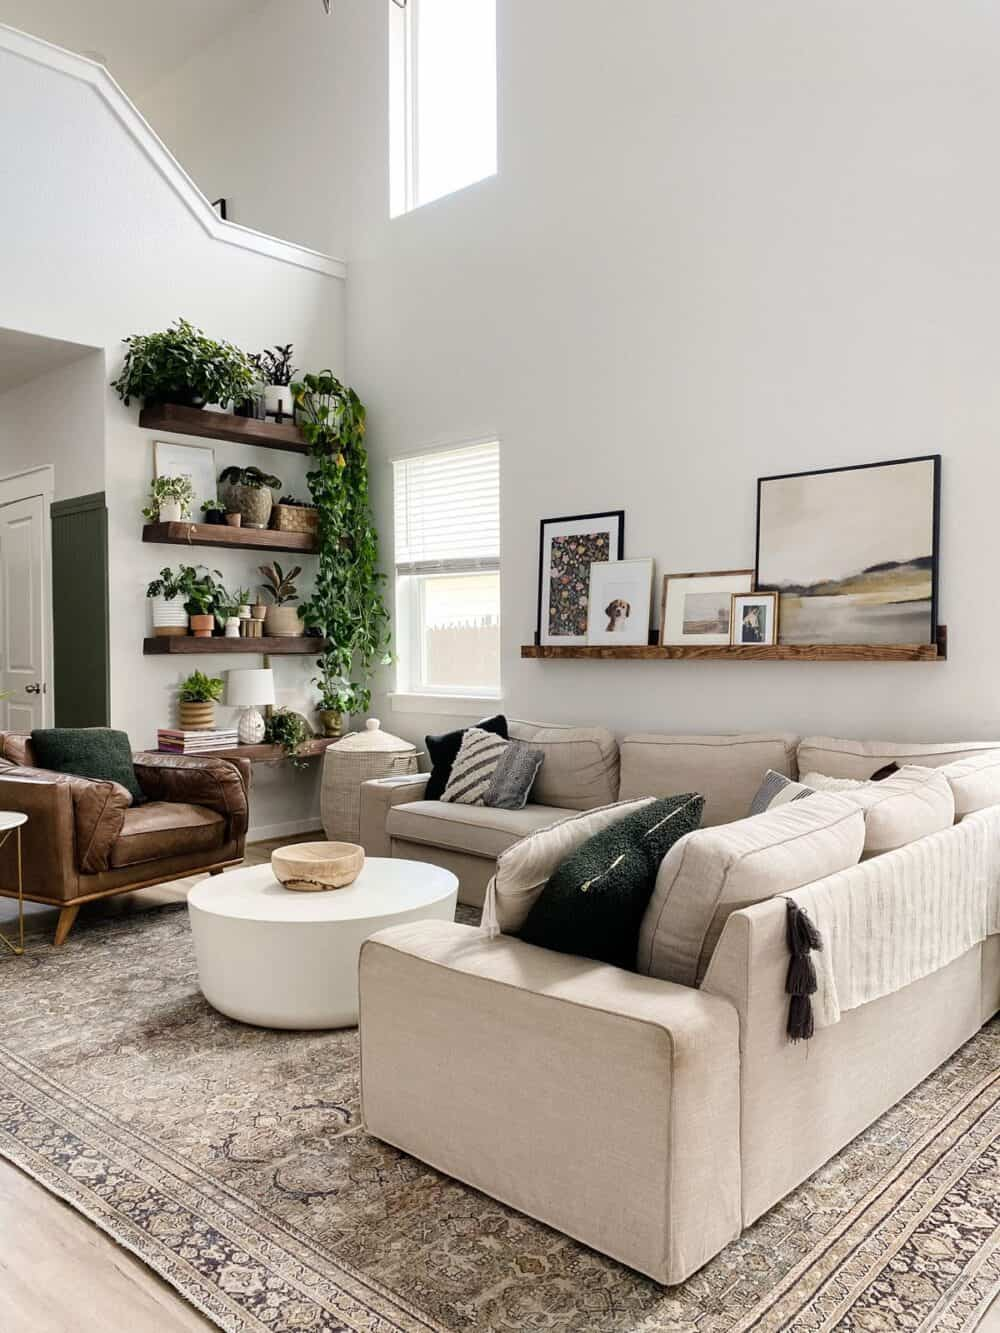 An open living space with neutral colors